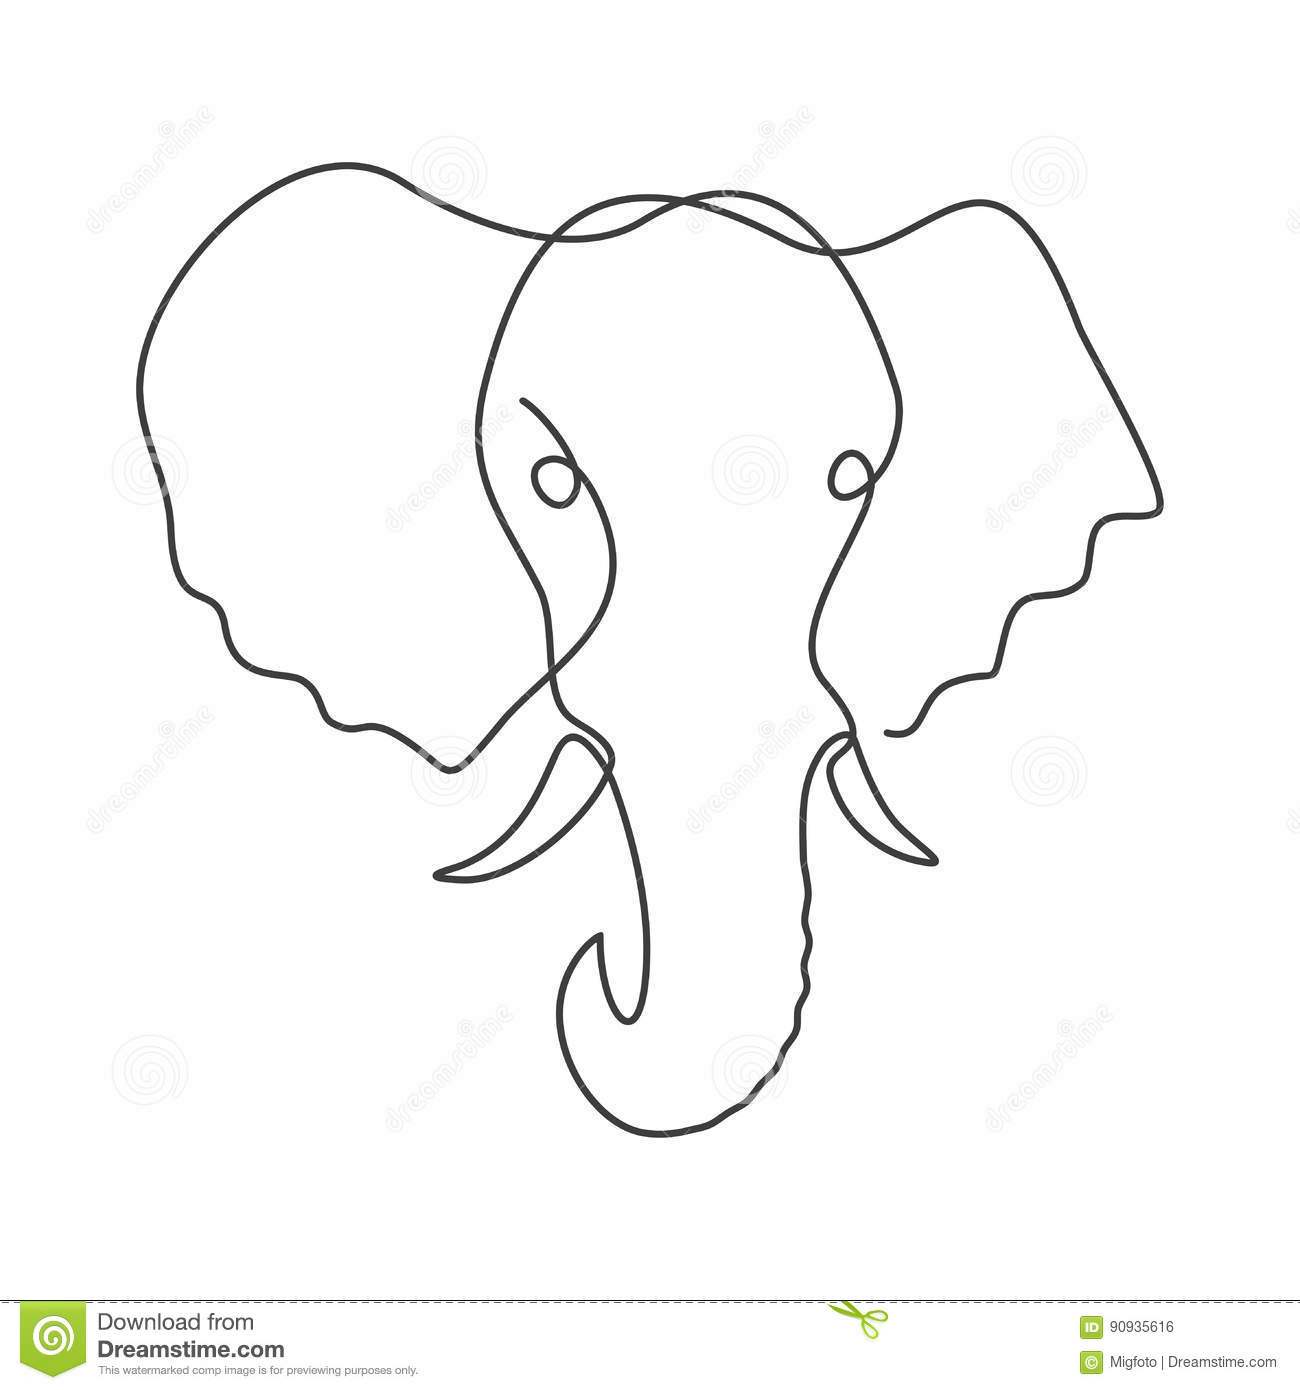 One Line Body Art : Line drawing elephant pixshark images